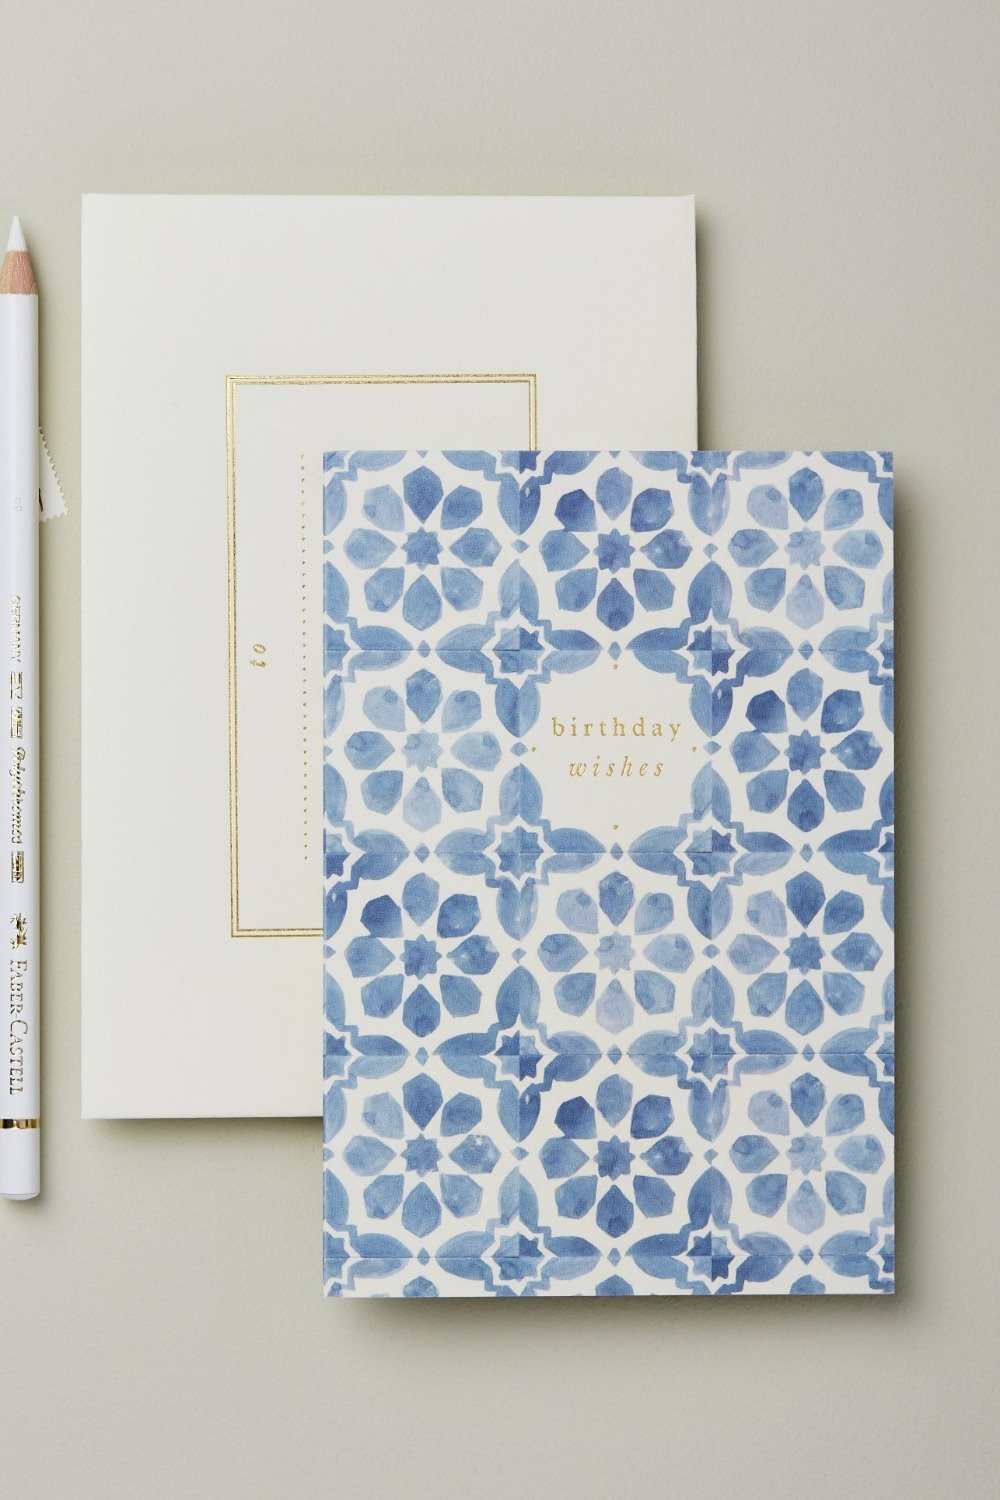 Wanderlust Card - Blue Tile Birthday Wishes Gifts & Stationery Wanderlust